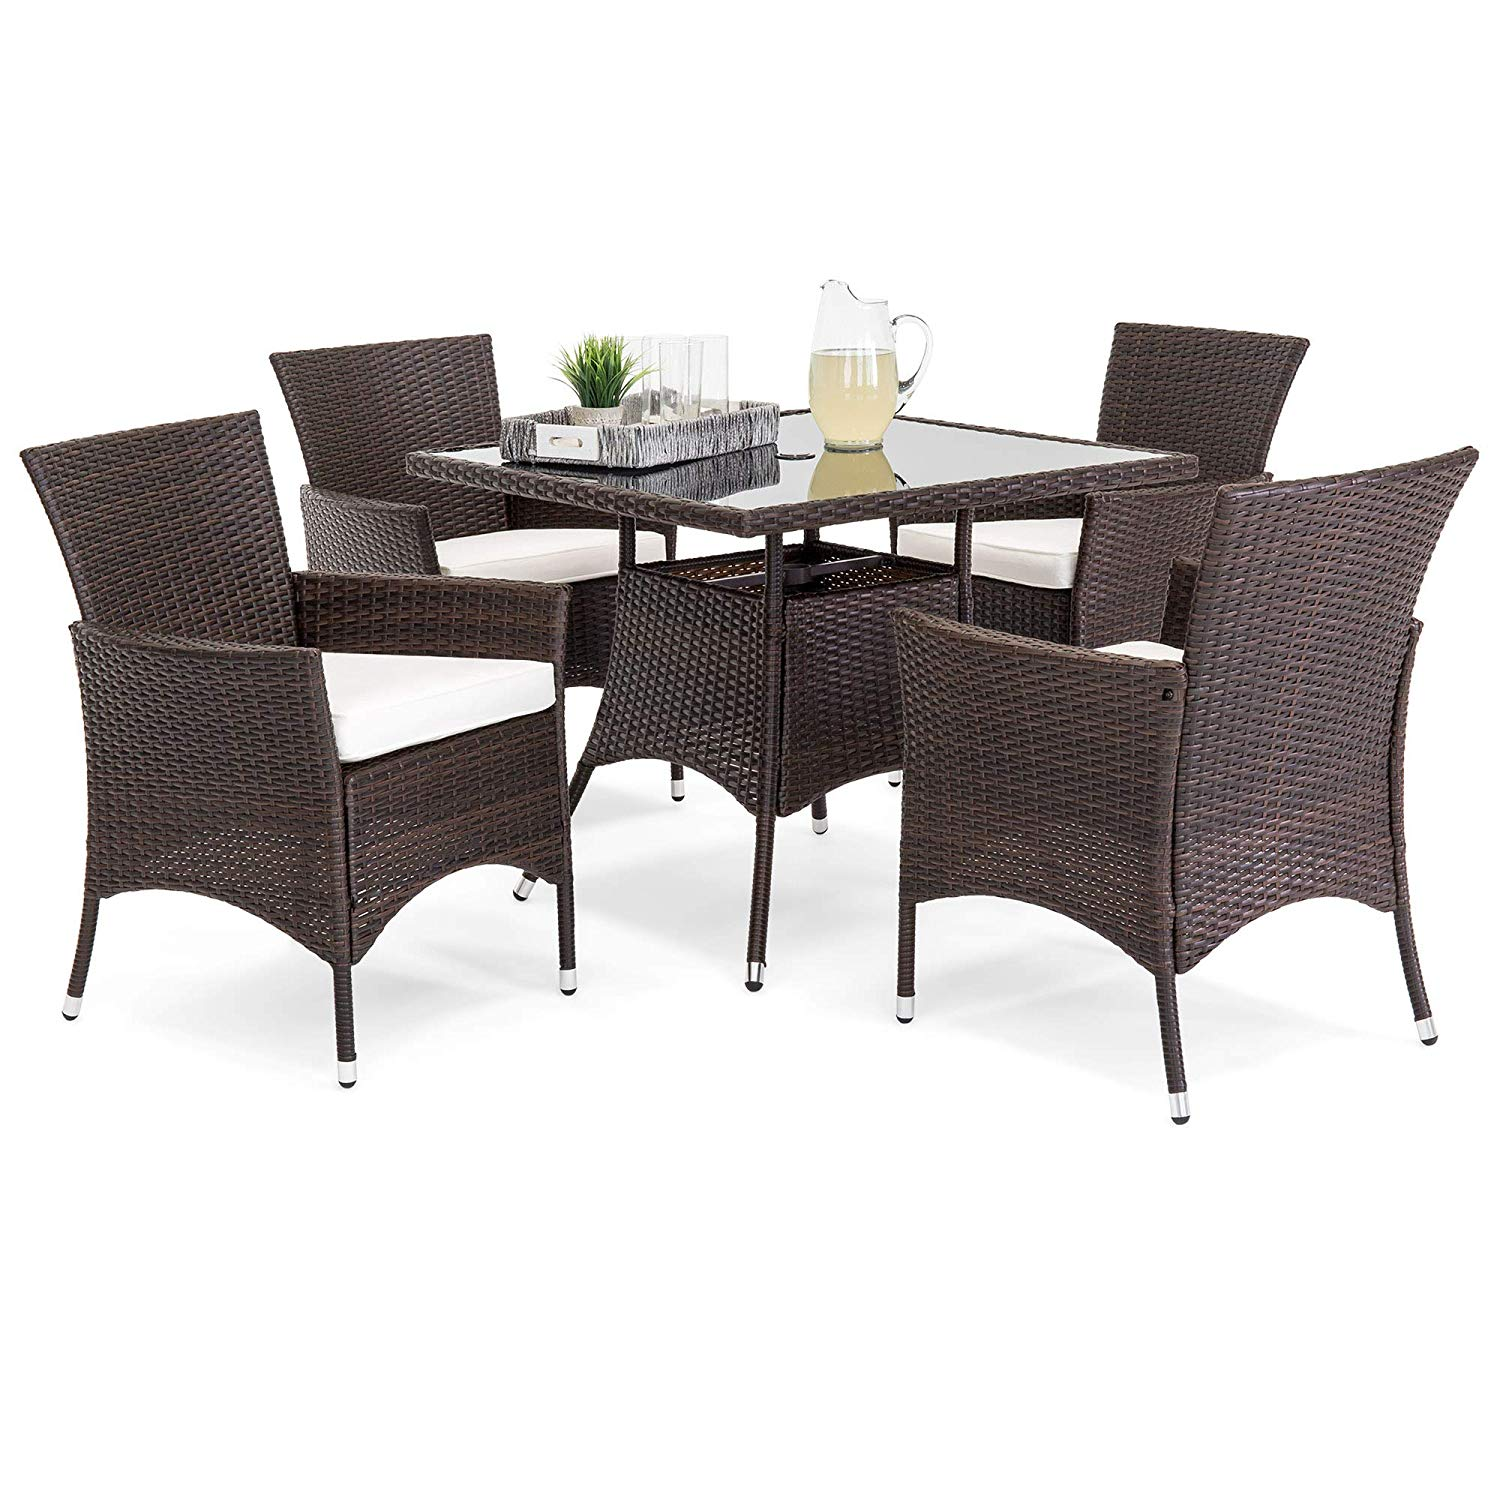 Best Choice Products 5-piece Indoor Outdoor Wicker Patio Dining Set